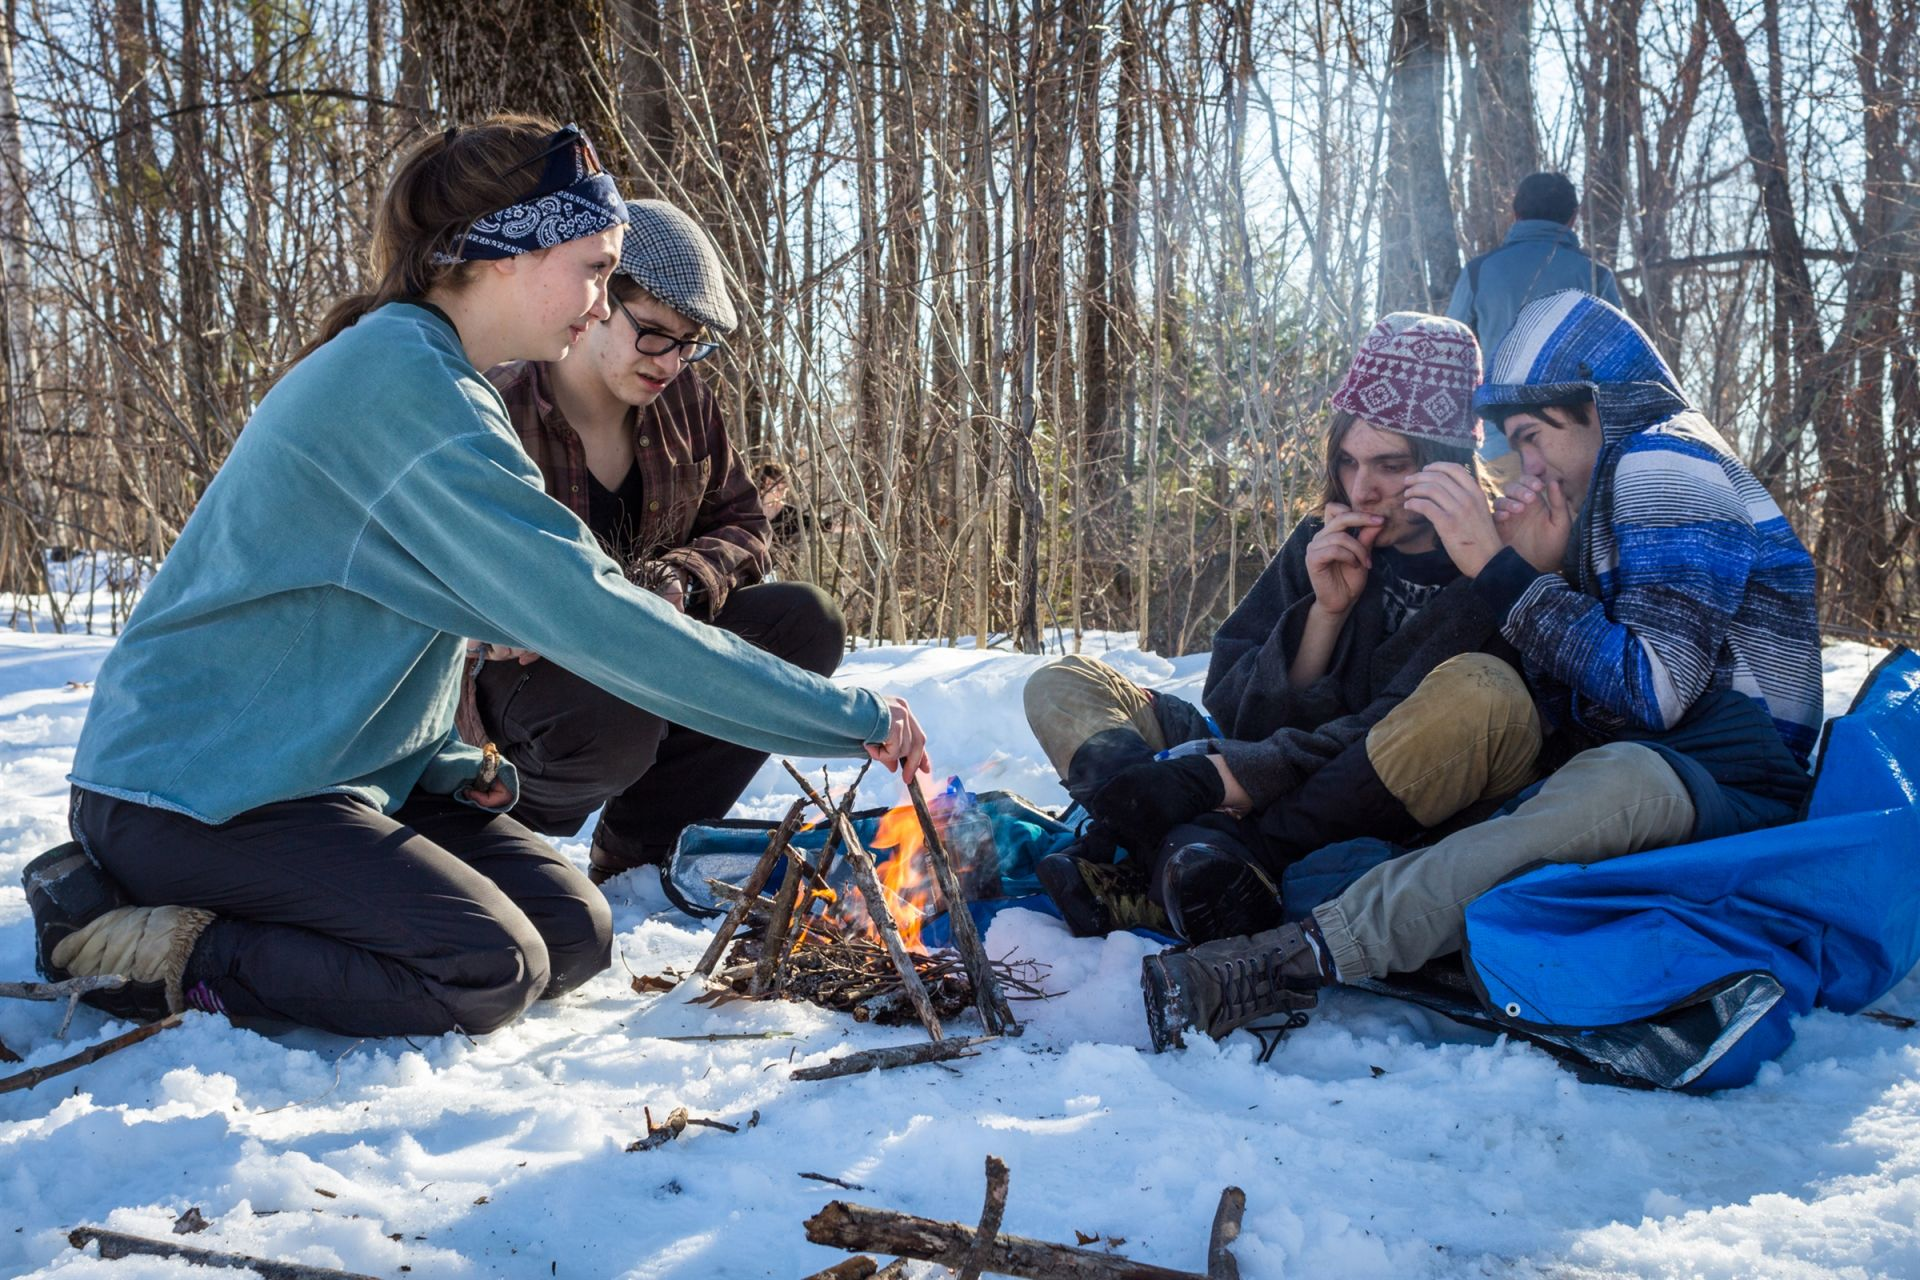 During the scenario, two members of the group had the beginning stages of hypothermia. It was up to the rest of the group to determine the best course of action to save their friends.